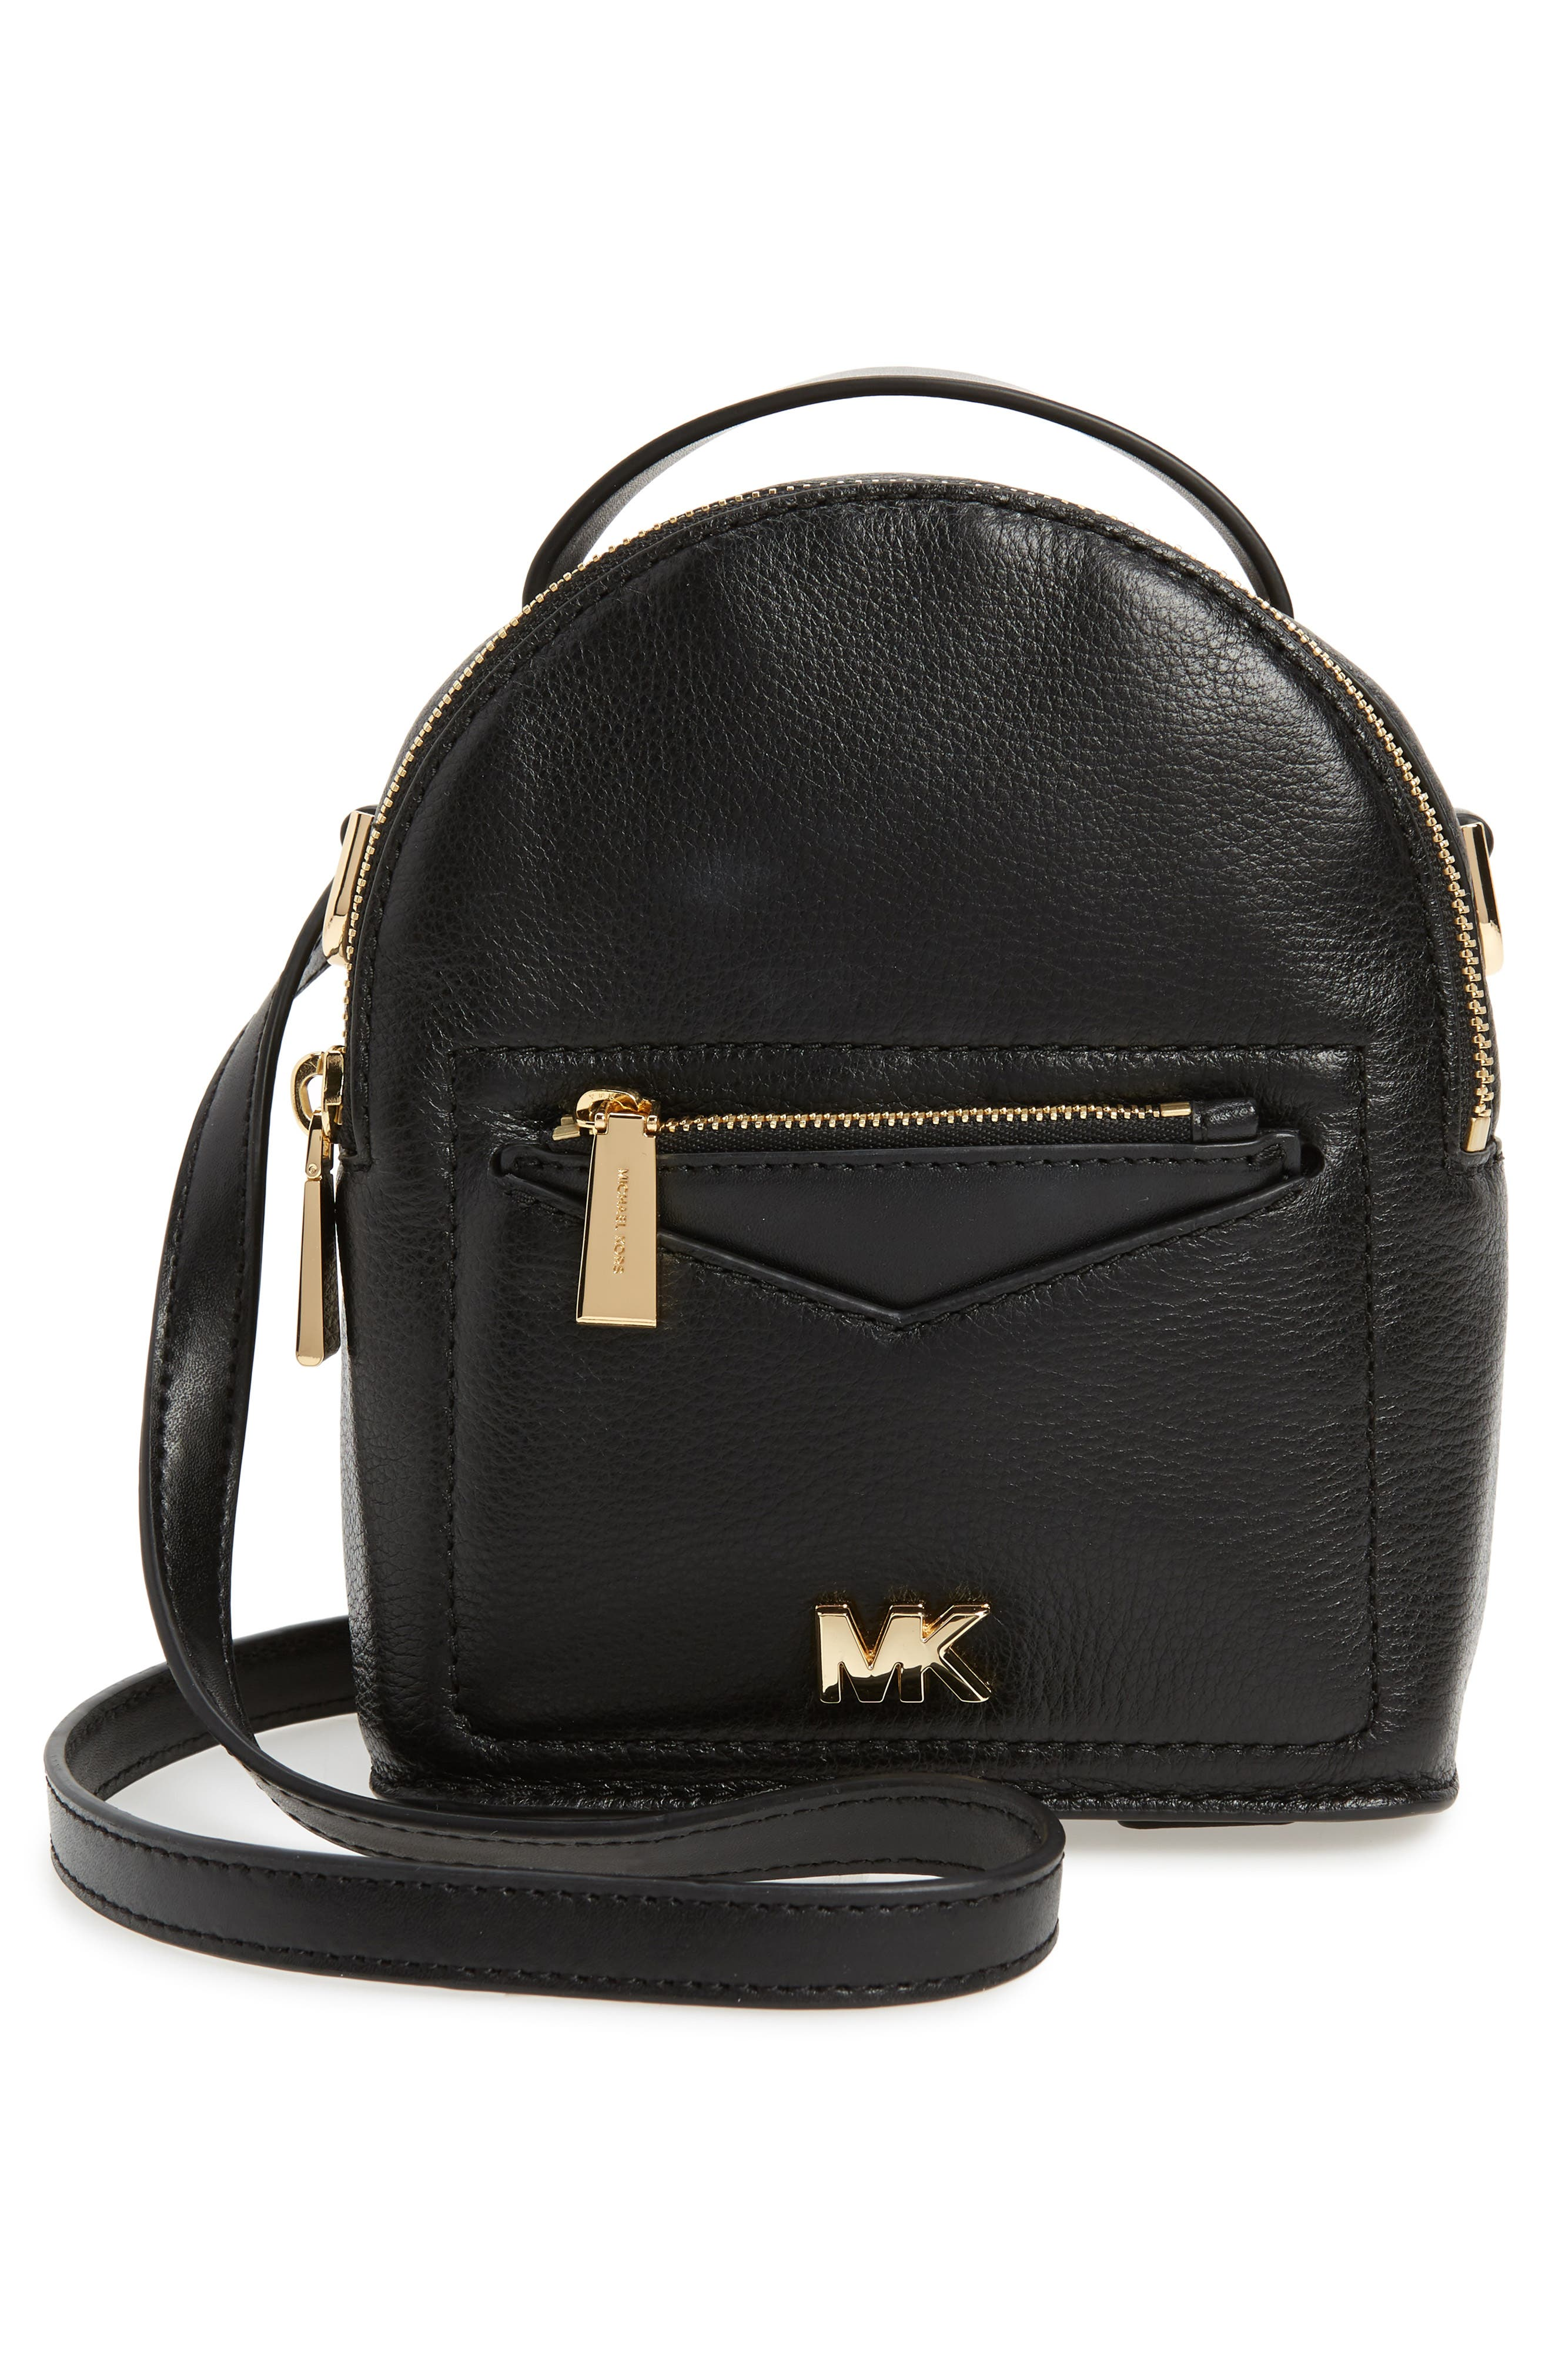 X-Small Convertible Leather Backpack,                             Alternate thumbnail 3, color,                             001